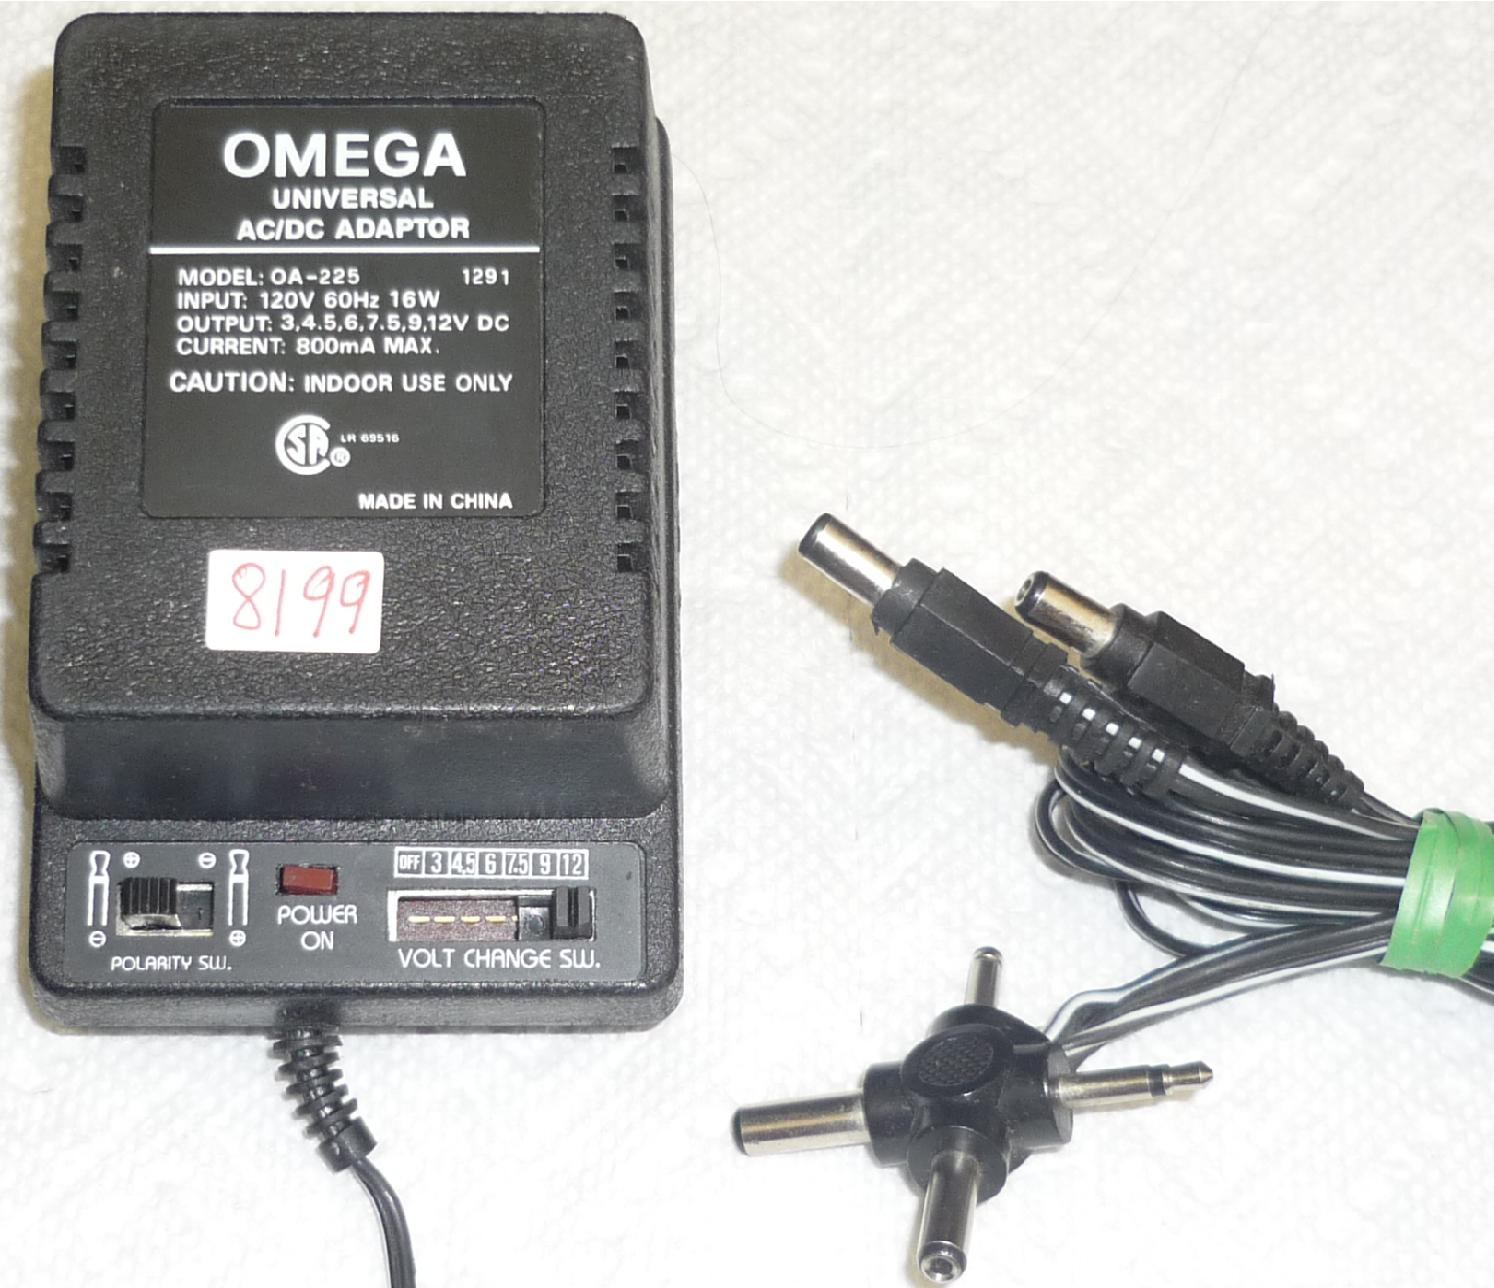 OMEGA OA-225 UNIVERSAL AC DC ADAPTER USED 3,4,5,6,7.5,9,12VDC 80